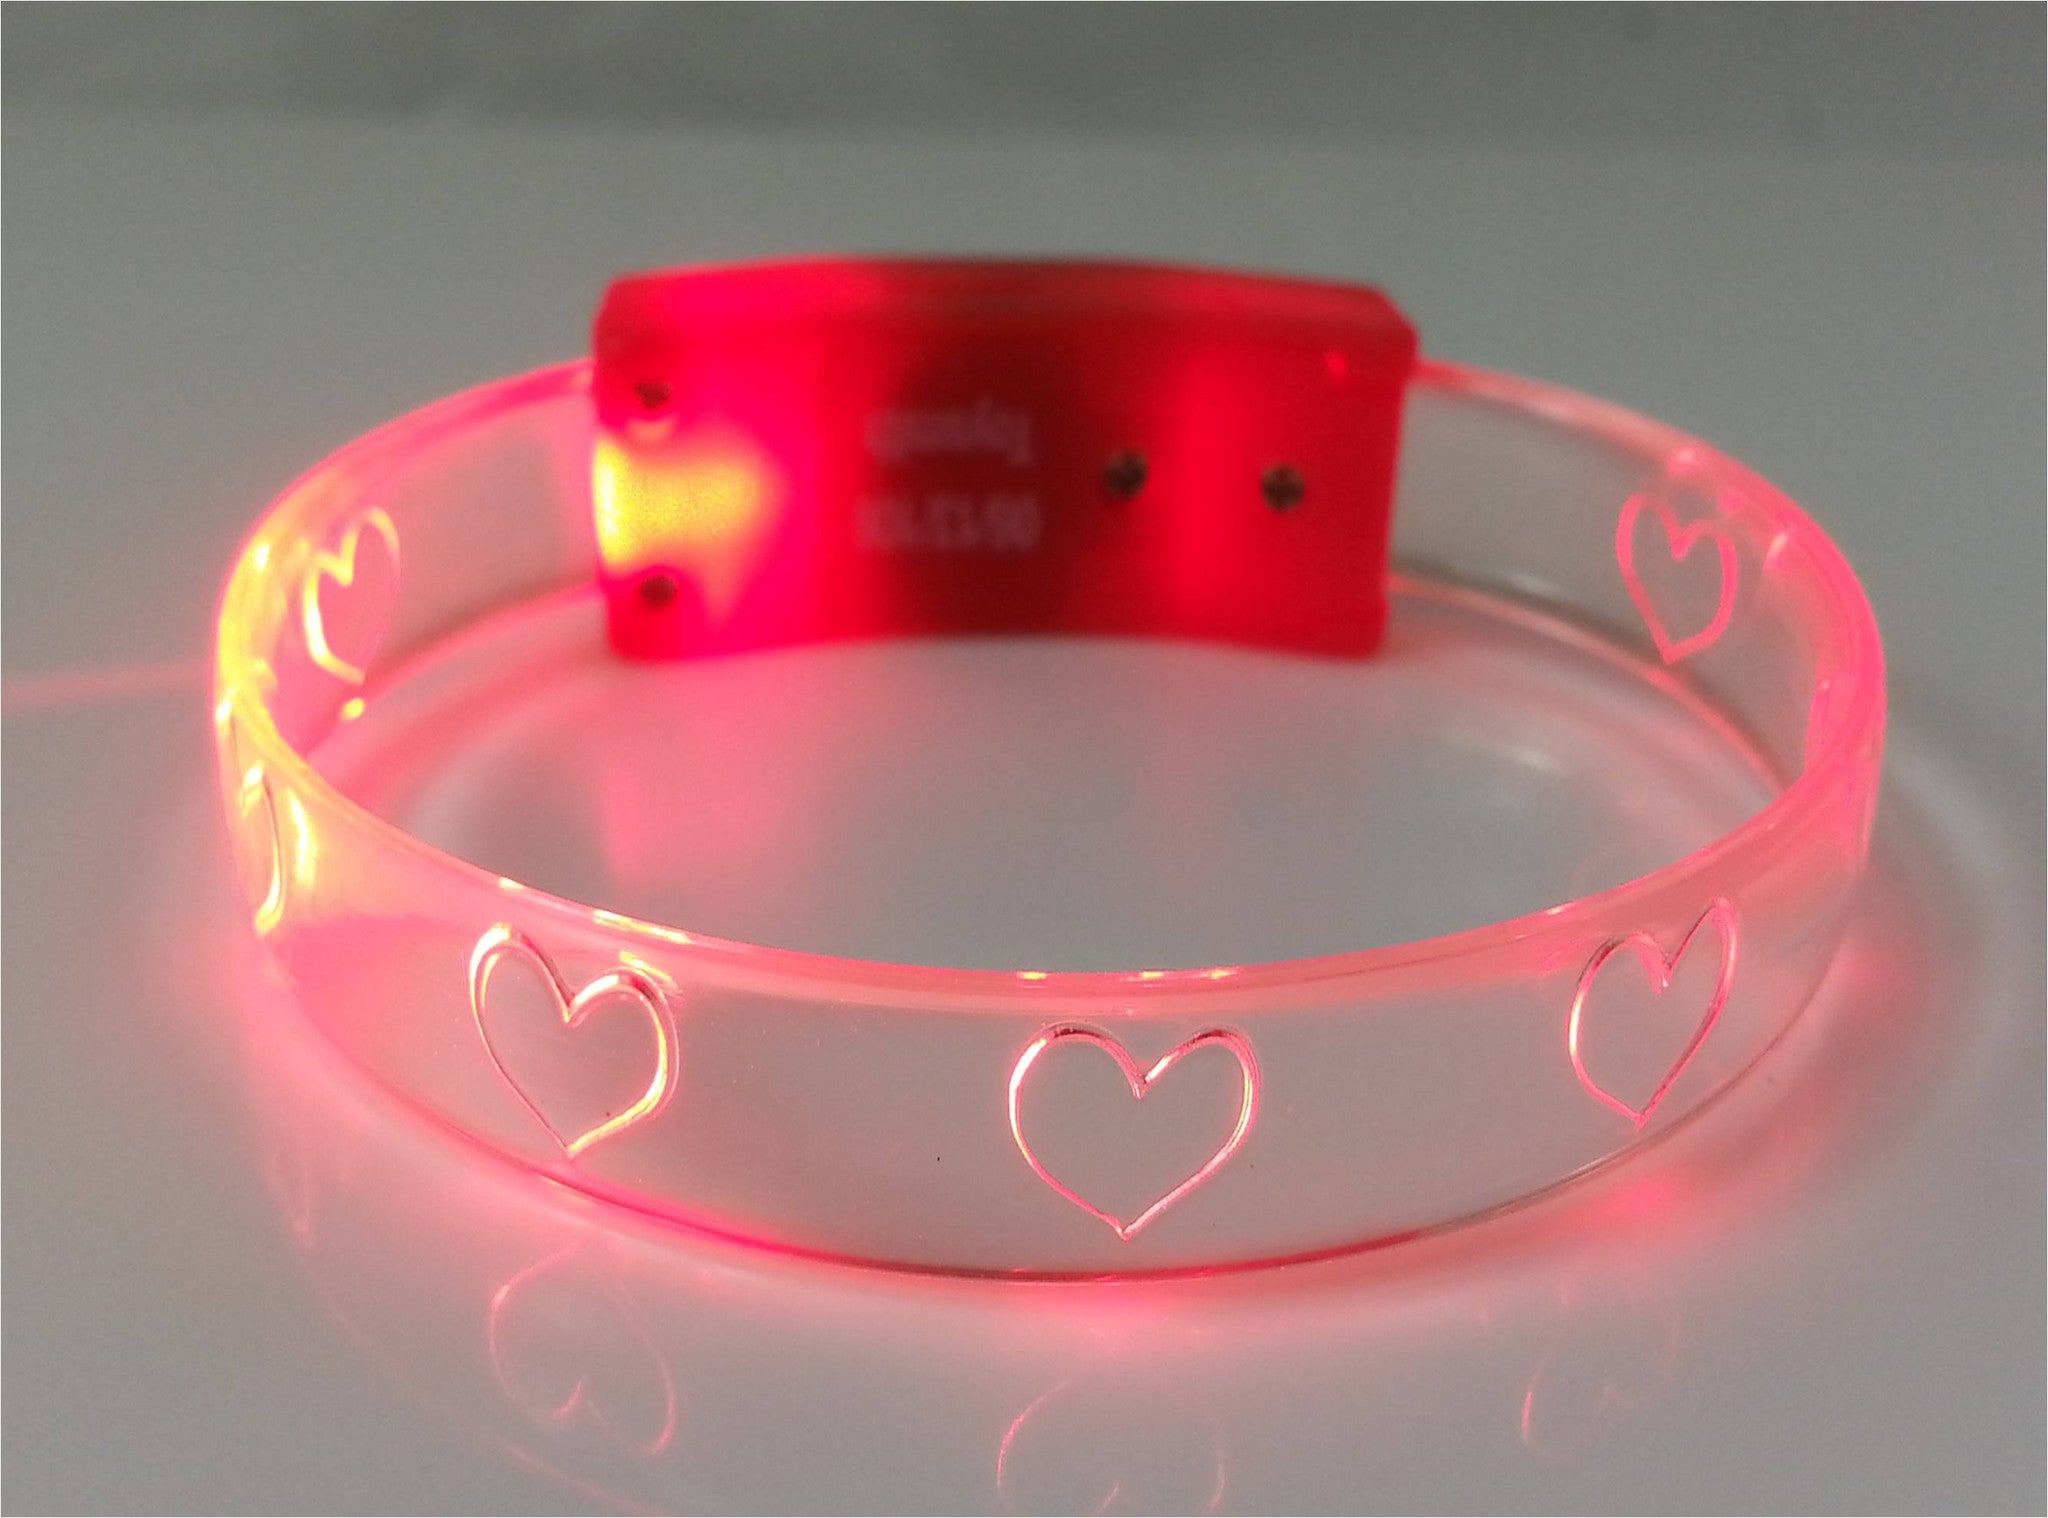 FlashBanz Designz Light Up Bracelet - Red with Hearts - Off The Wall Toys and Gifts